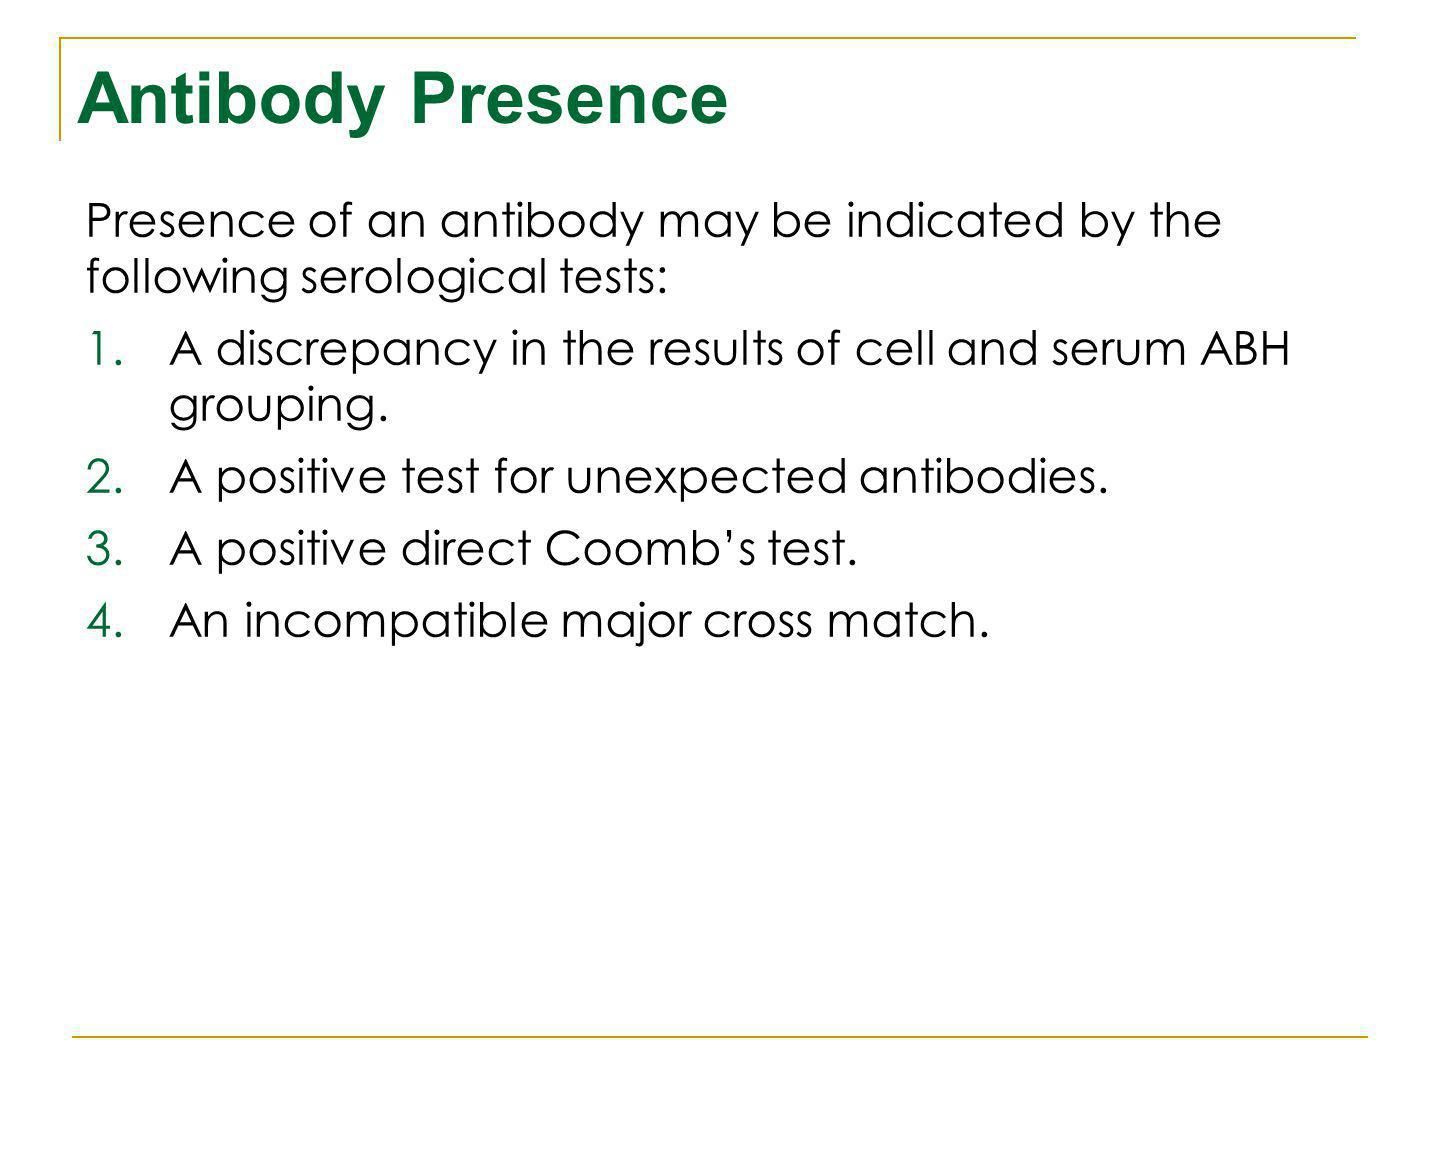 Antibody Presence Presence of an antibody may be indicated by the following serological tests: